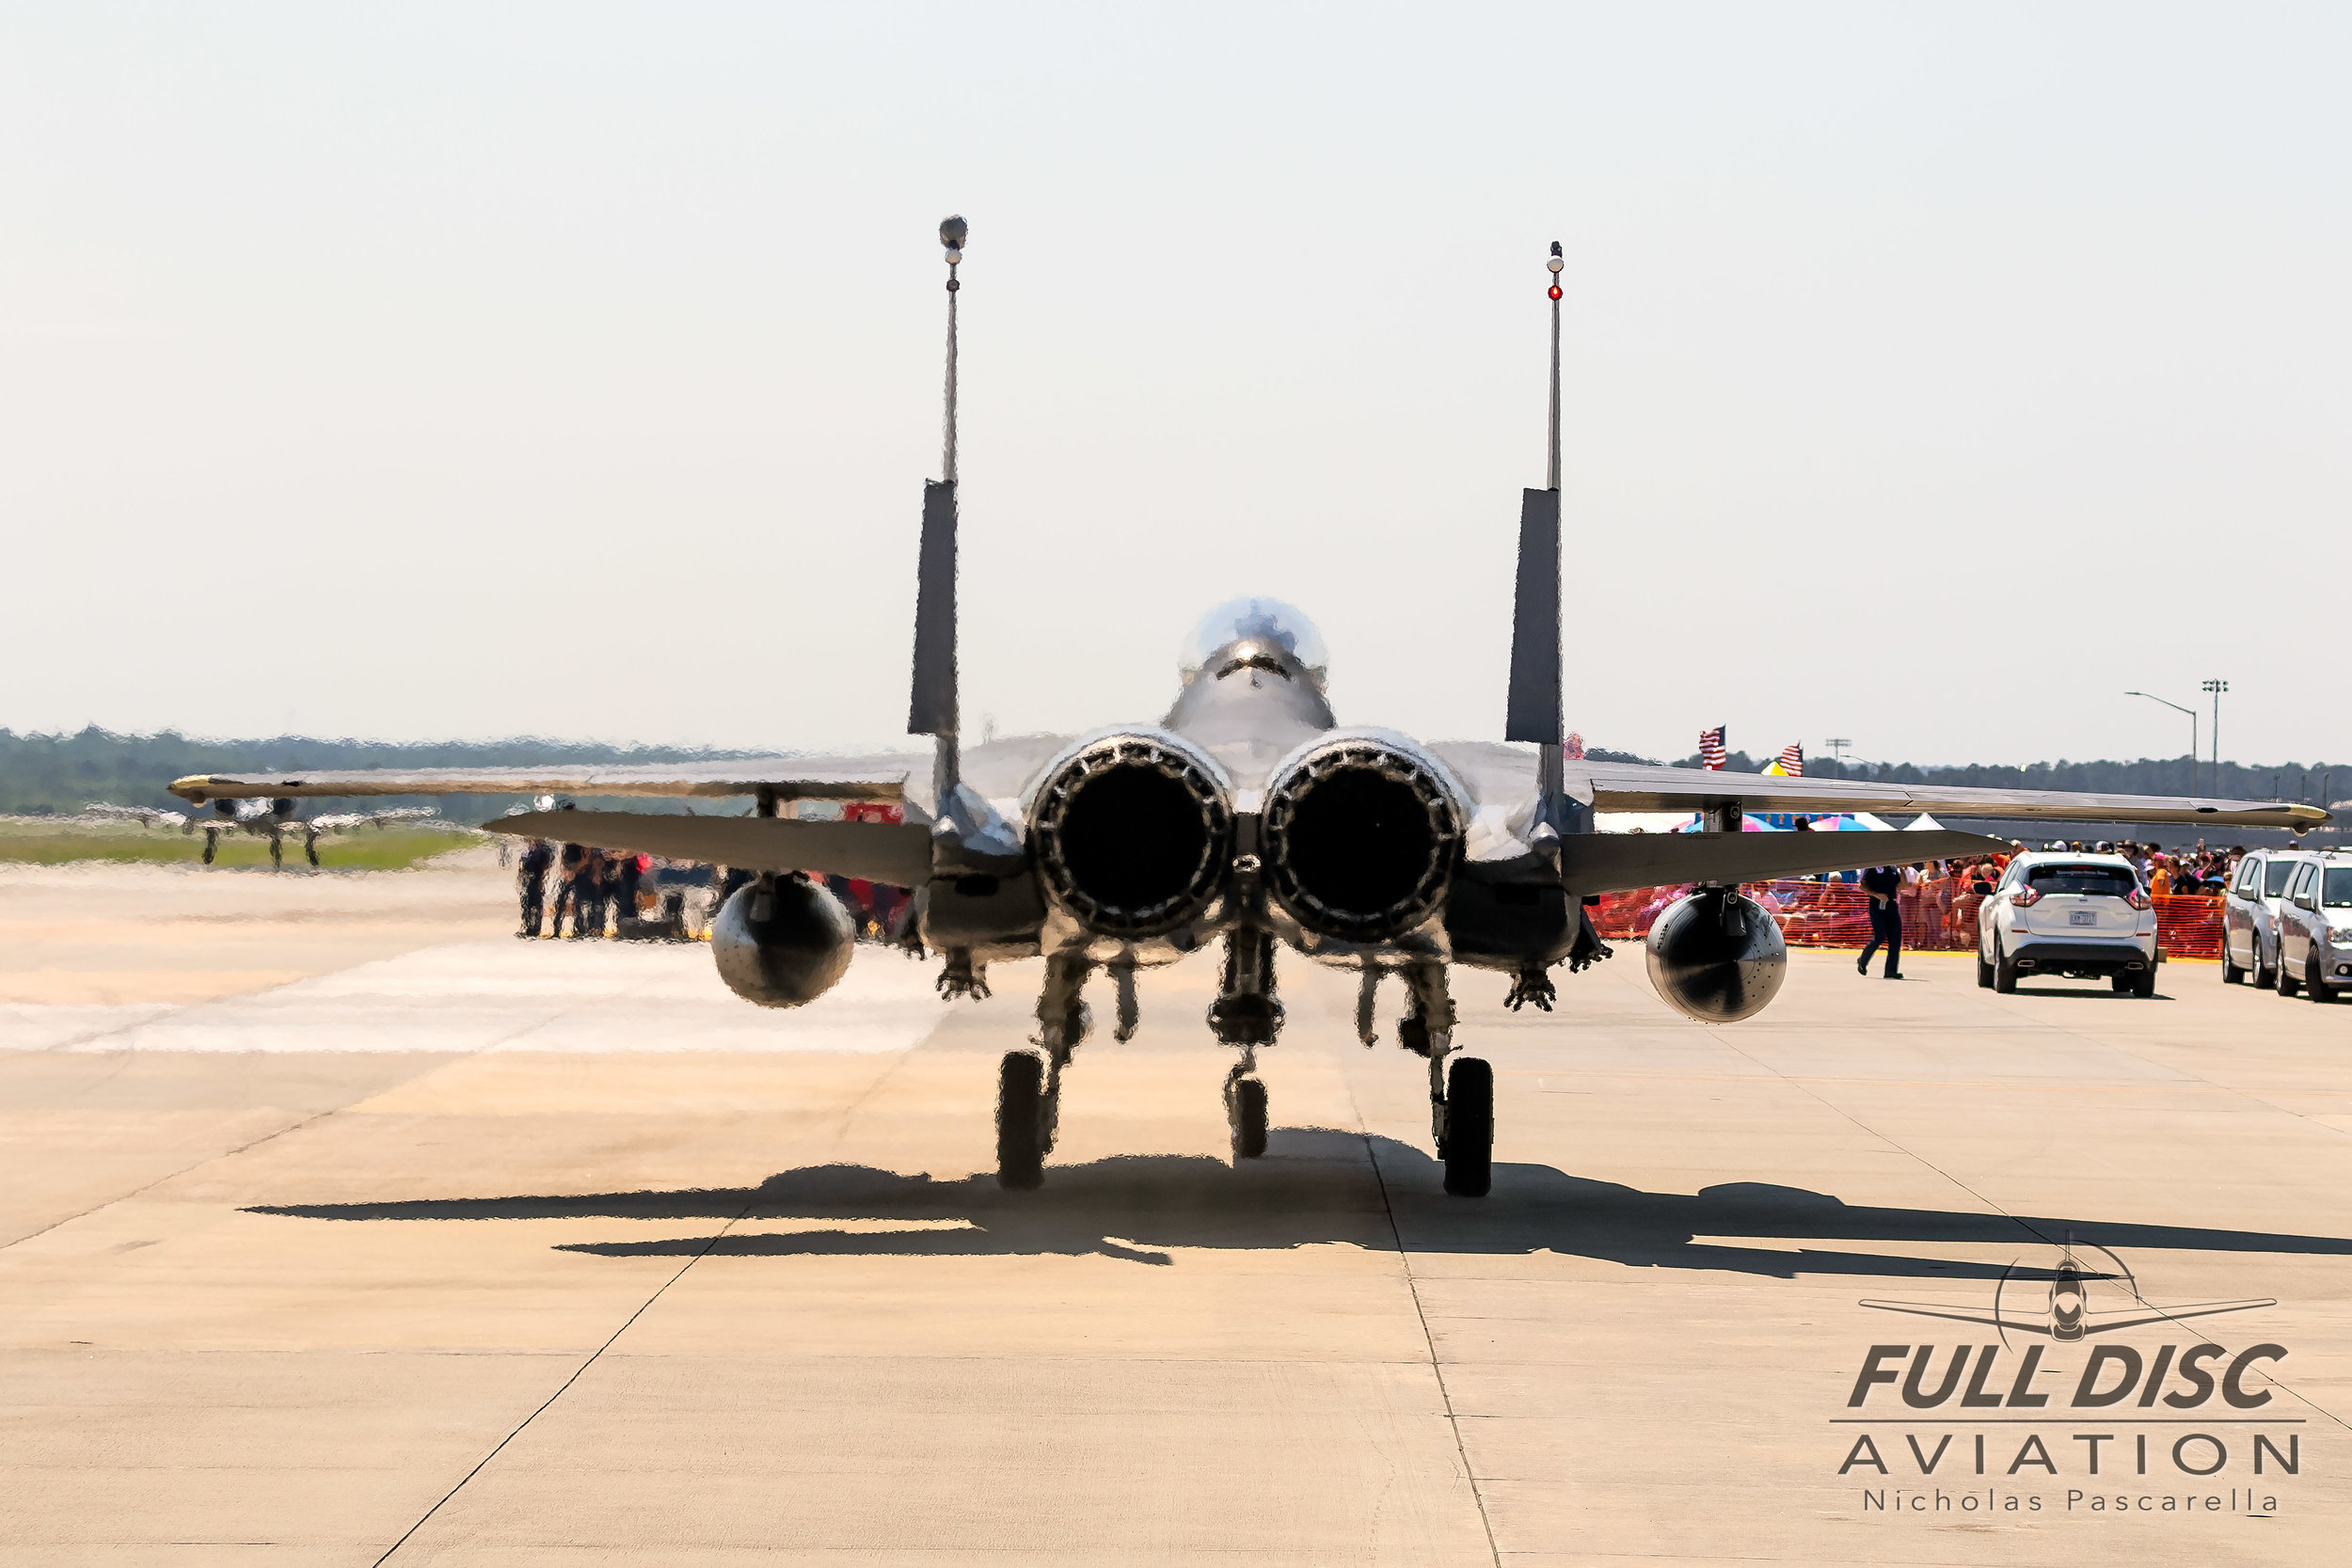 nicholaspascarella_fulldiscavation_aviation_airshow_strikeeagle_wingsoverwayne_f15_strikeeagle_seymourjohnsonafb.jpg